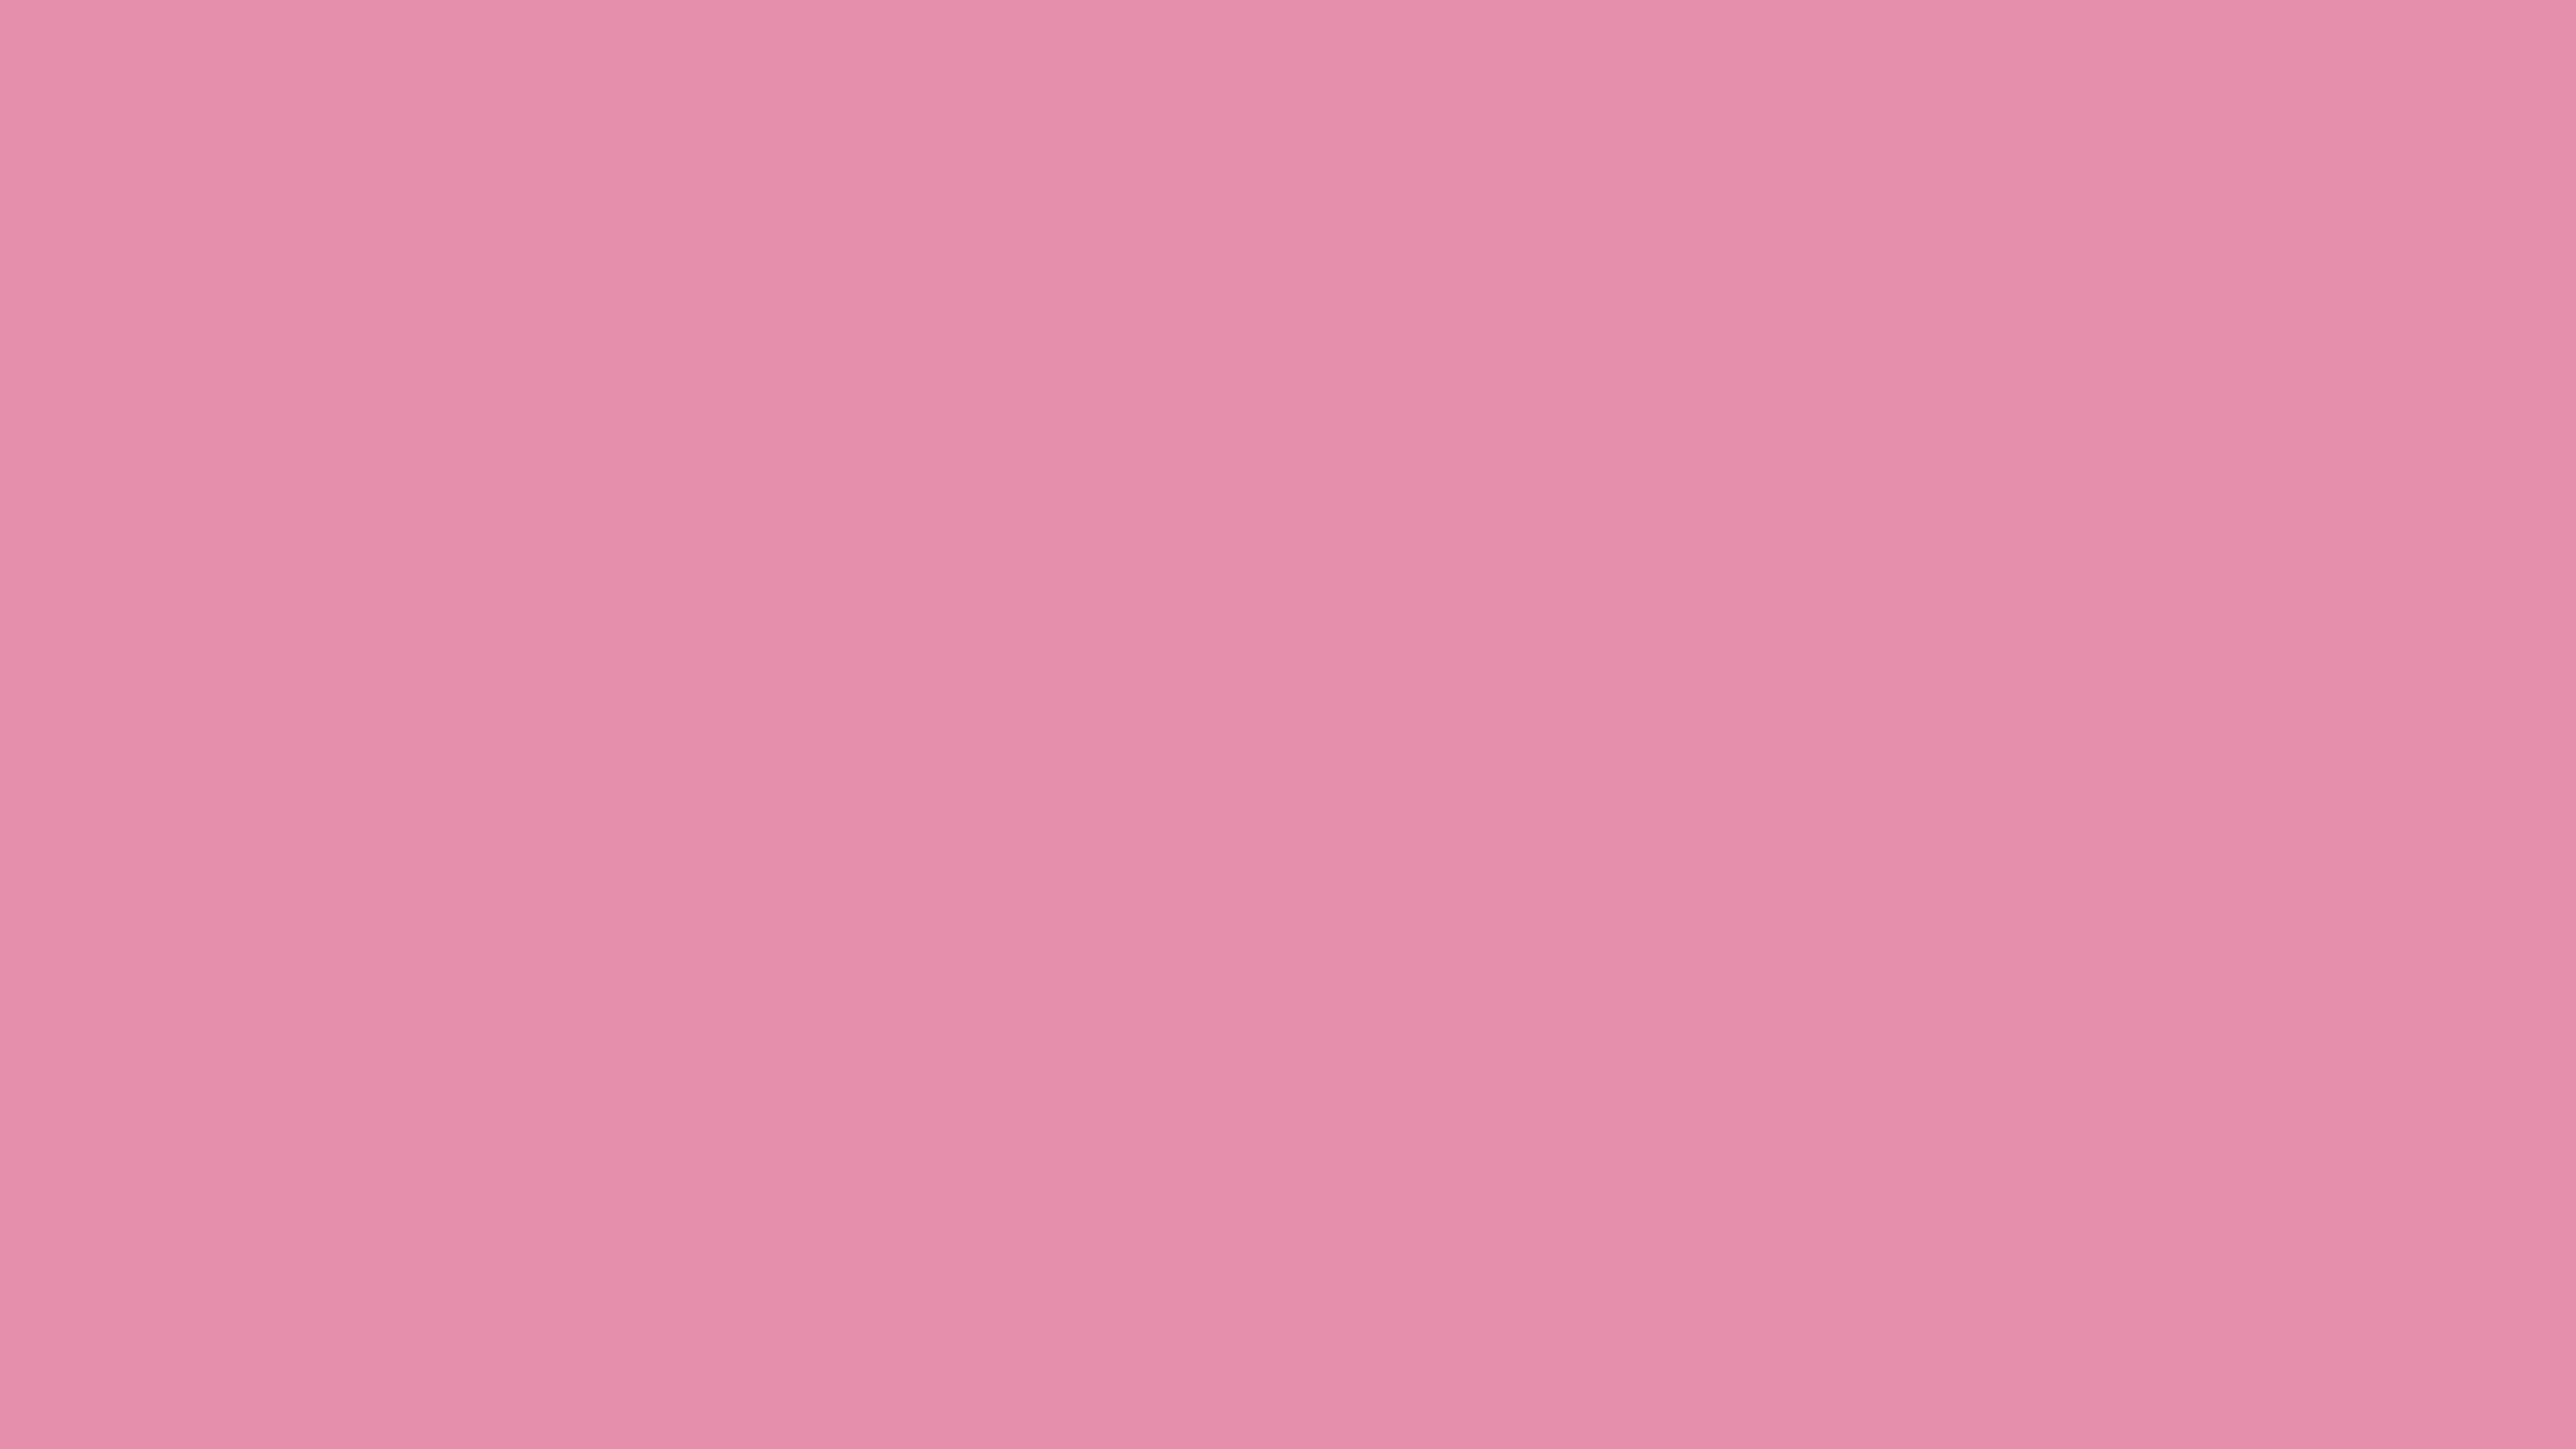 4096x2304 Charm Pink Solid Color Background 4096x2304